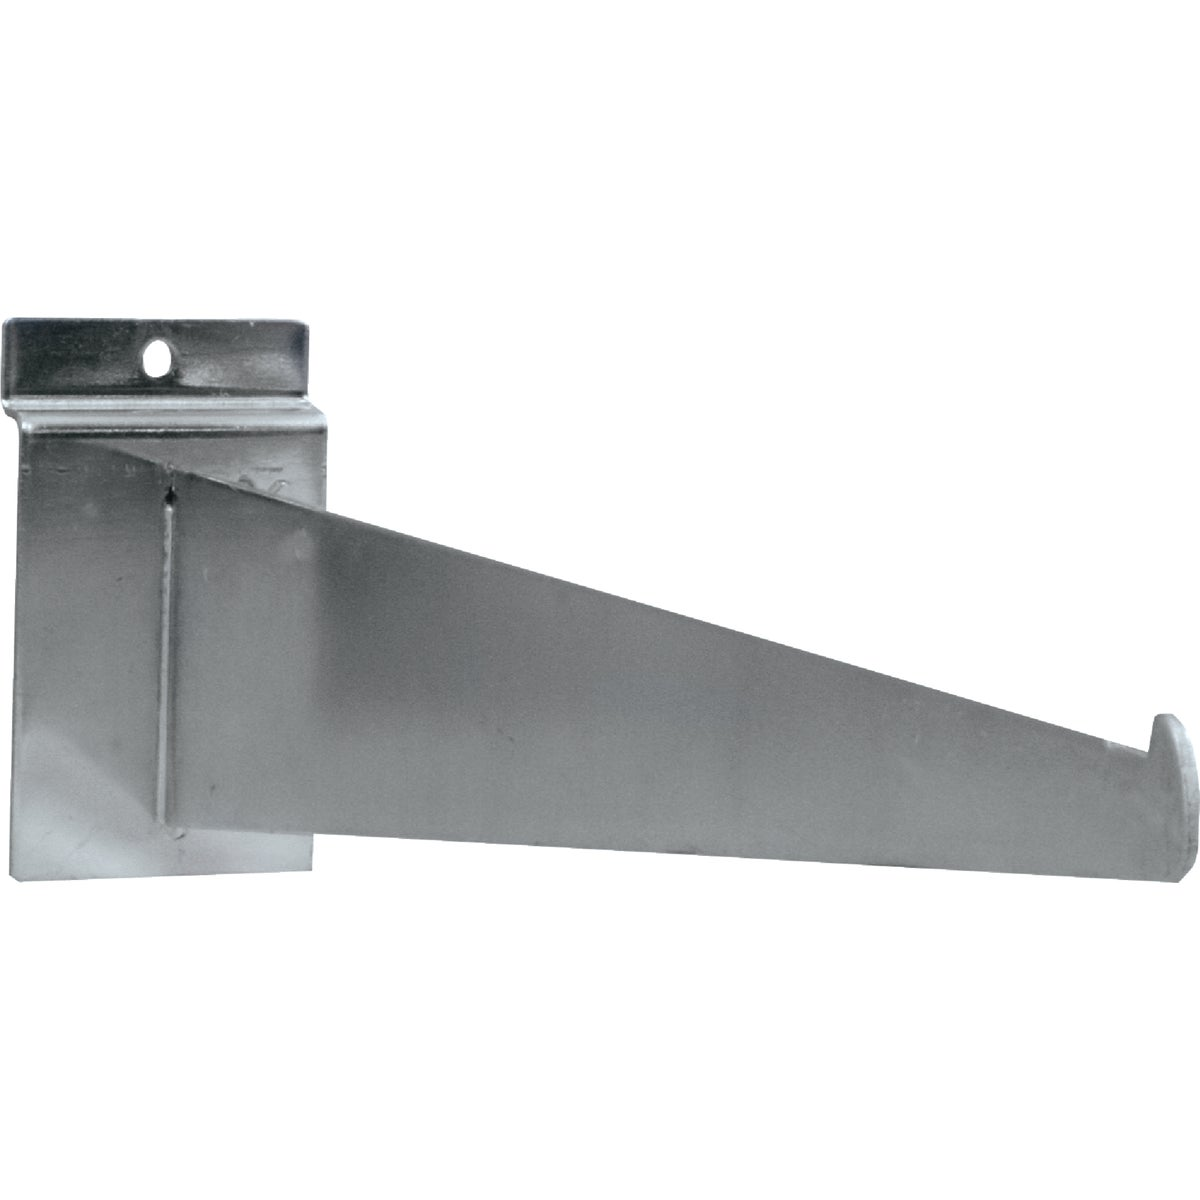 "2PK 10"" SHELF BRACKET"